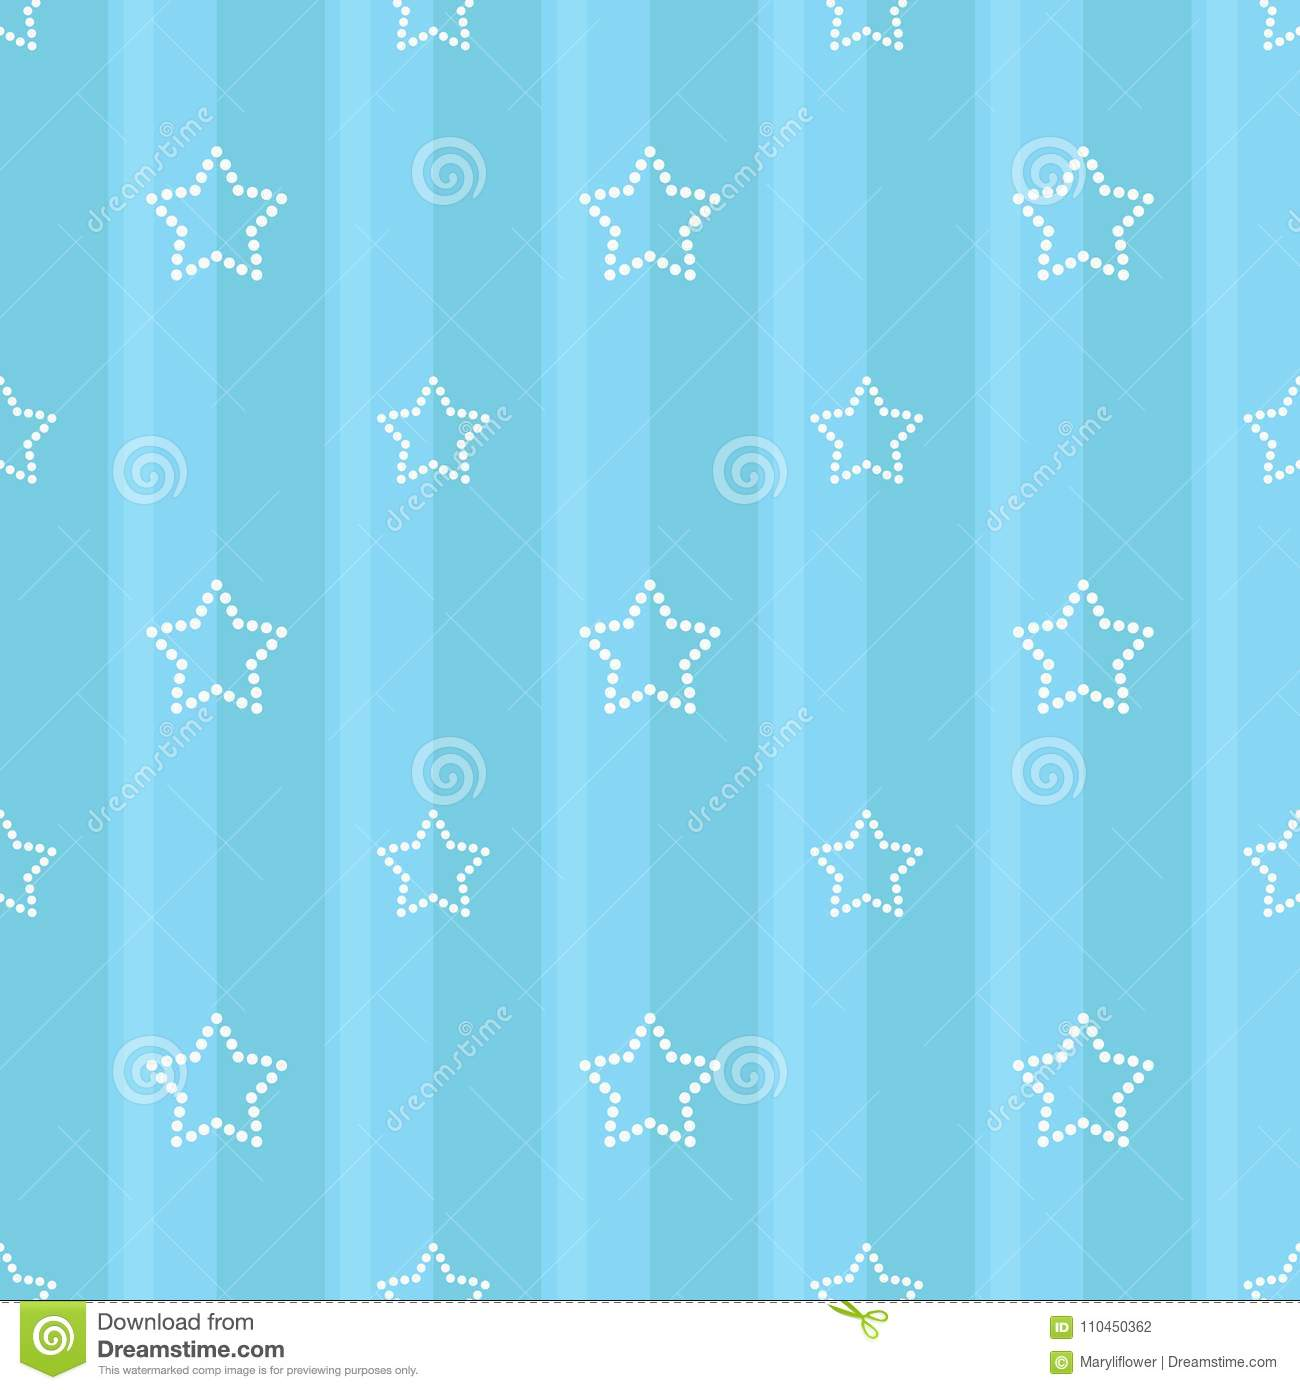 Striped Seamless Blue Pattern With Dotted Stars Children S Bedroom Baby Nursery Wallpaper Scrapbook Cover Or A Gift Wrap Stock Vector Illustration Of Fabric Child 110450362